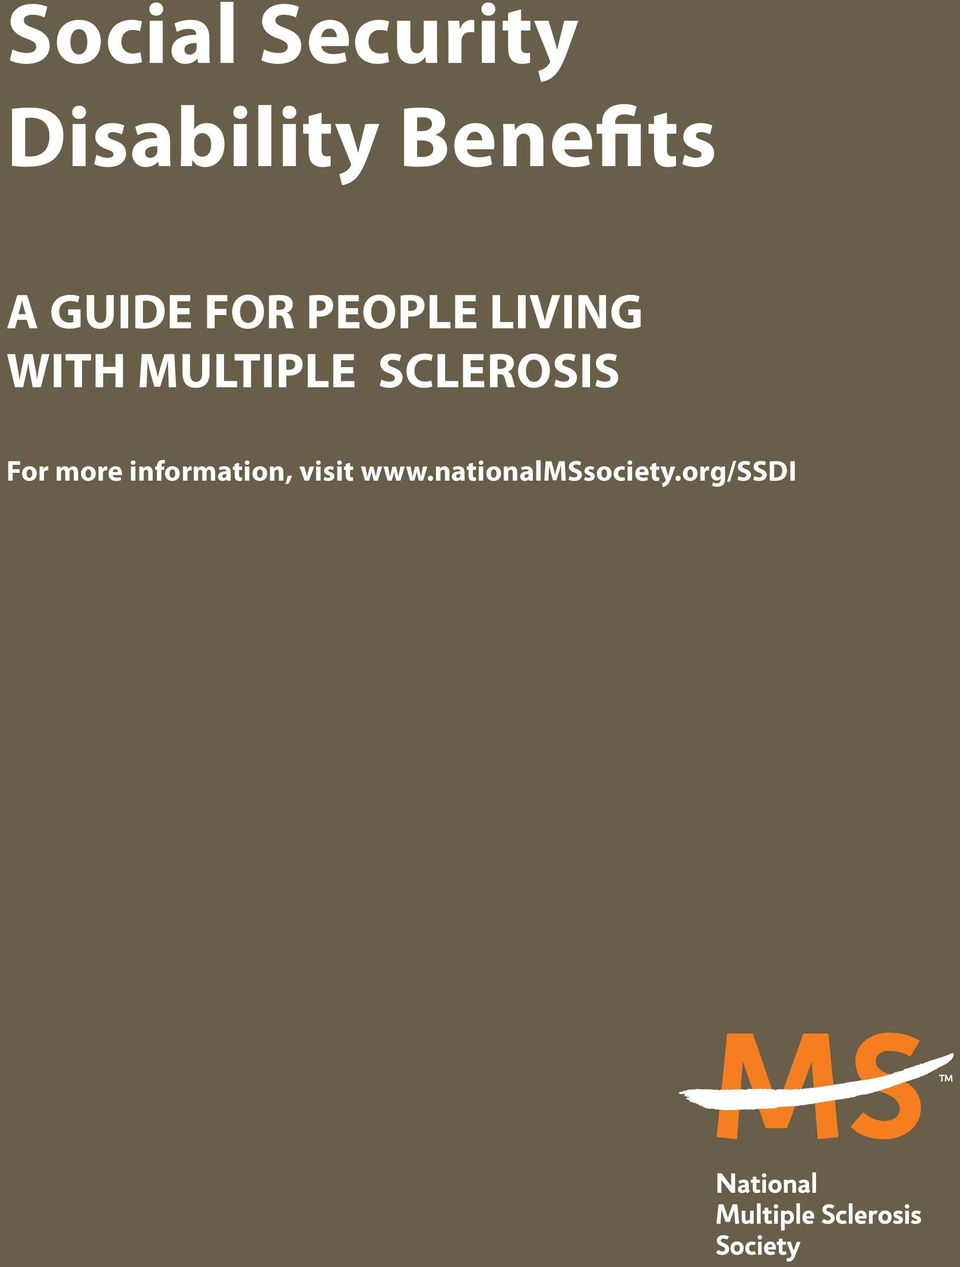 MULTIPLE SCLEROSIS For more